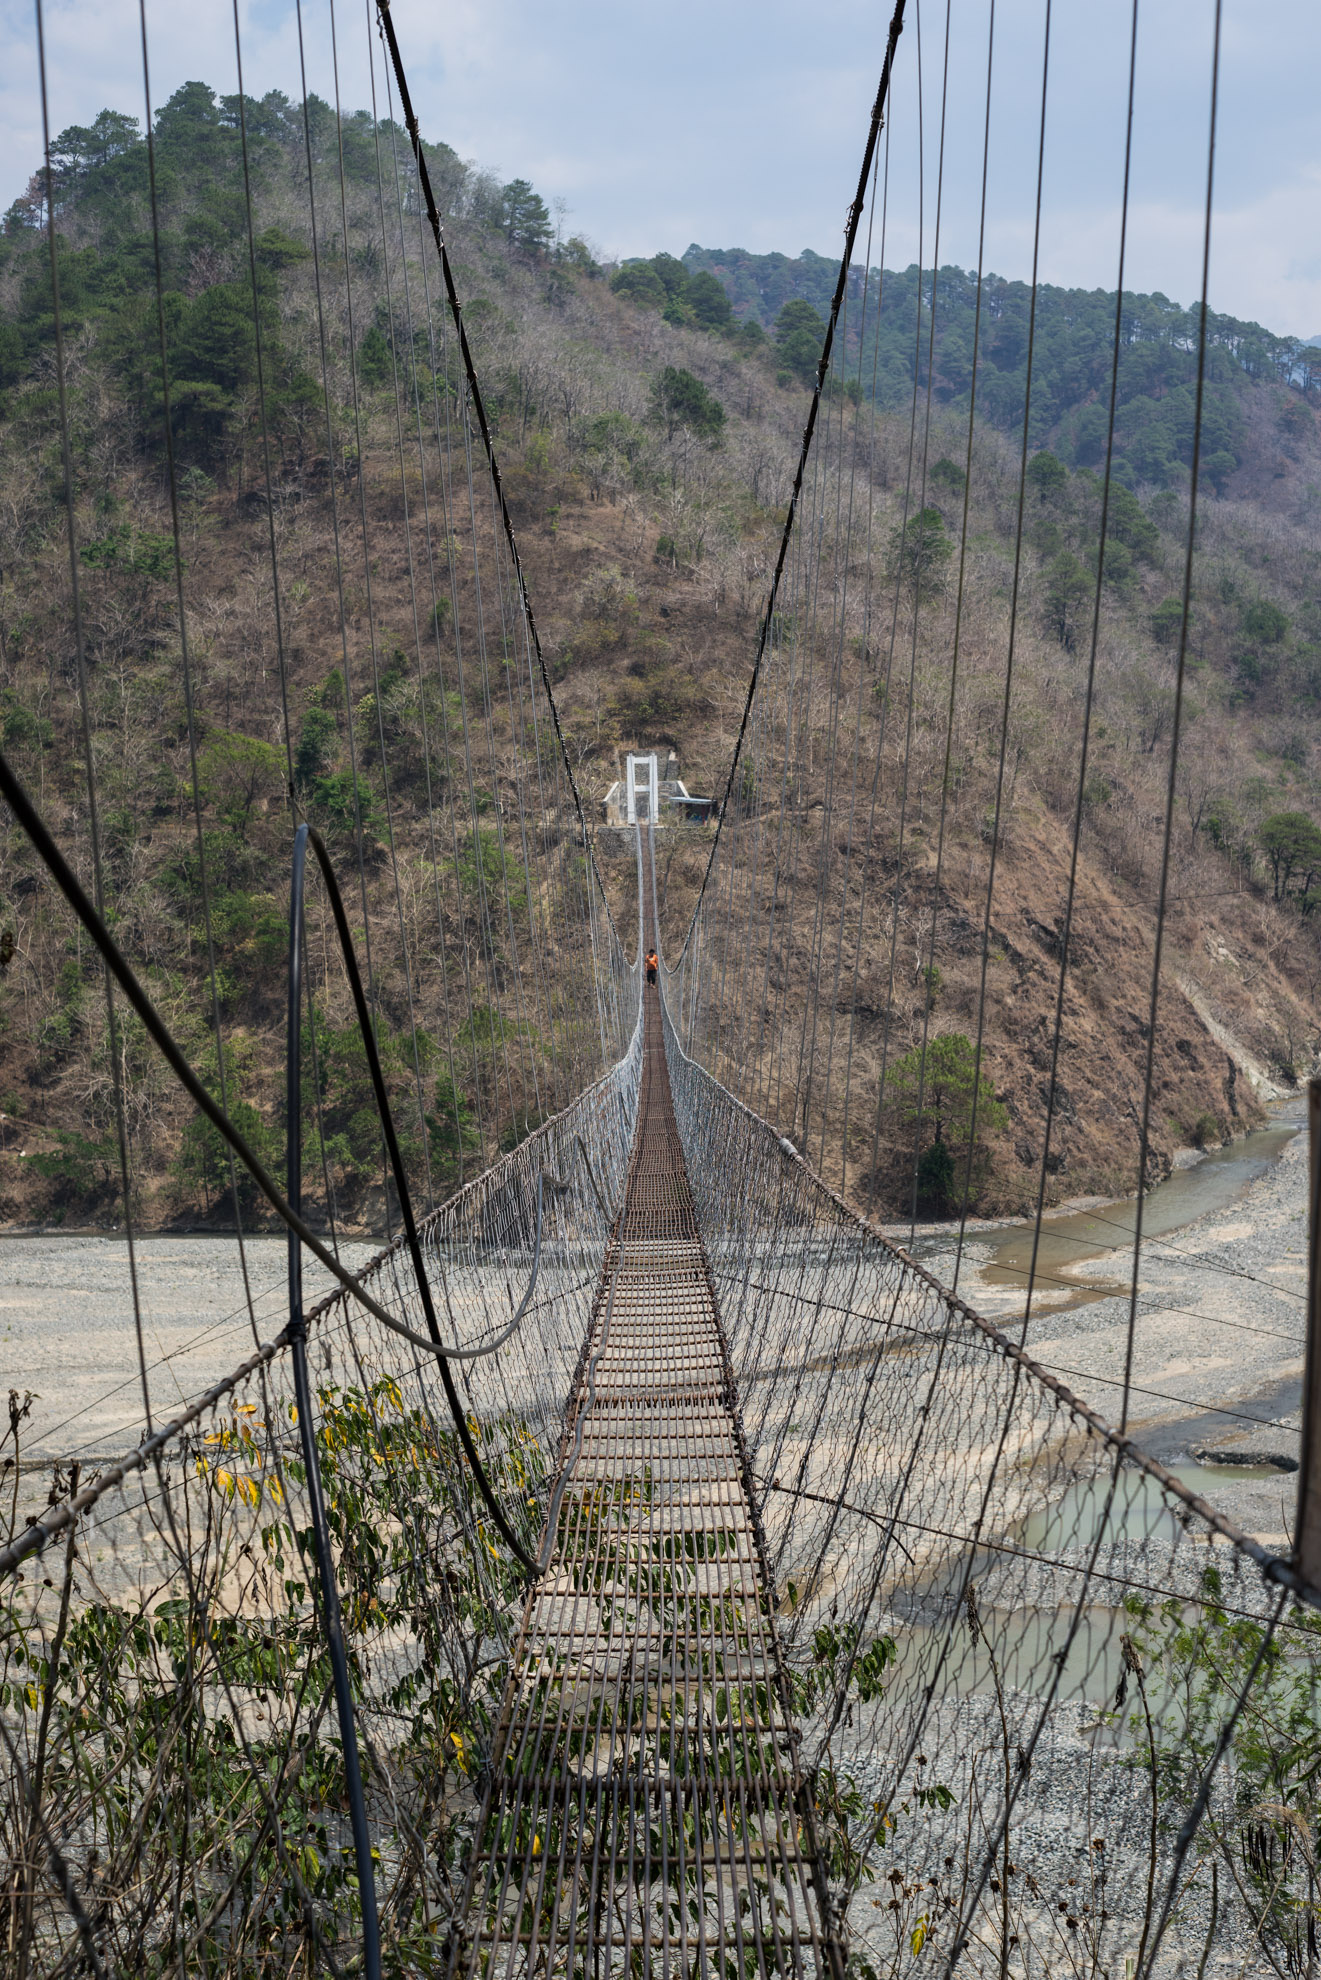 A cable bridge over a river in northern Philippines